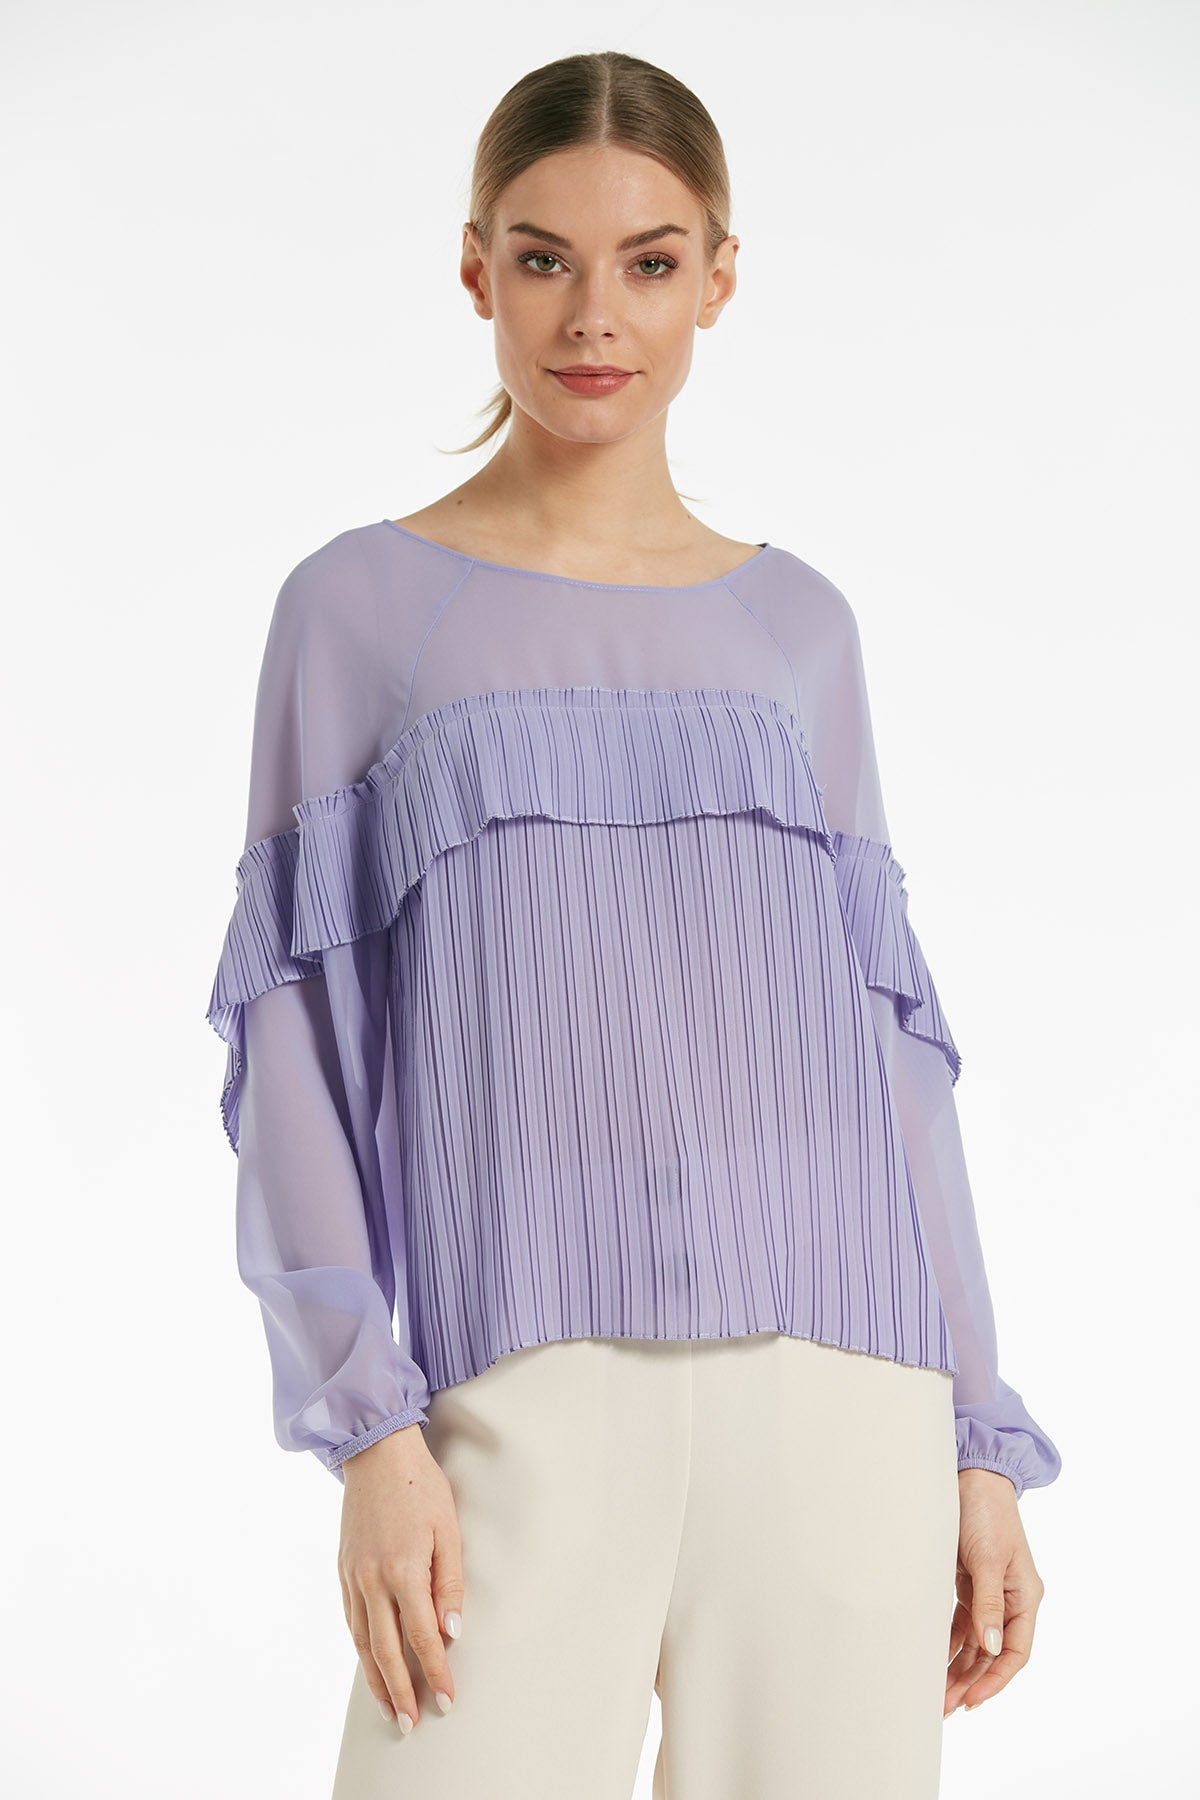 Pleated ruffle long sleeves top - 16142